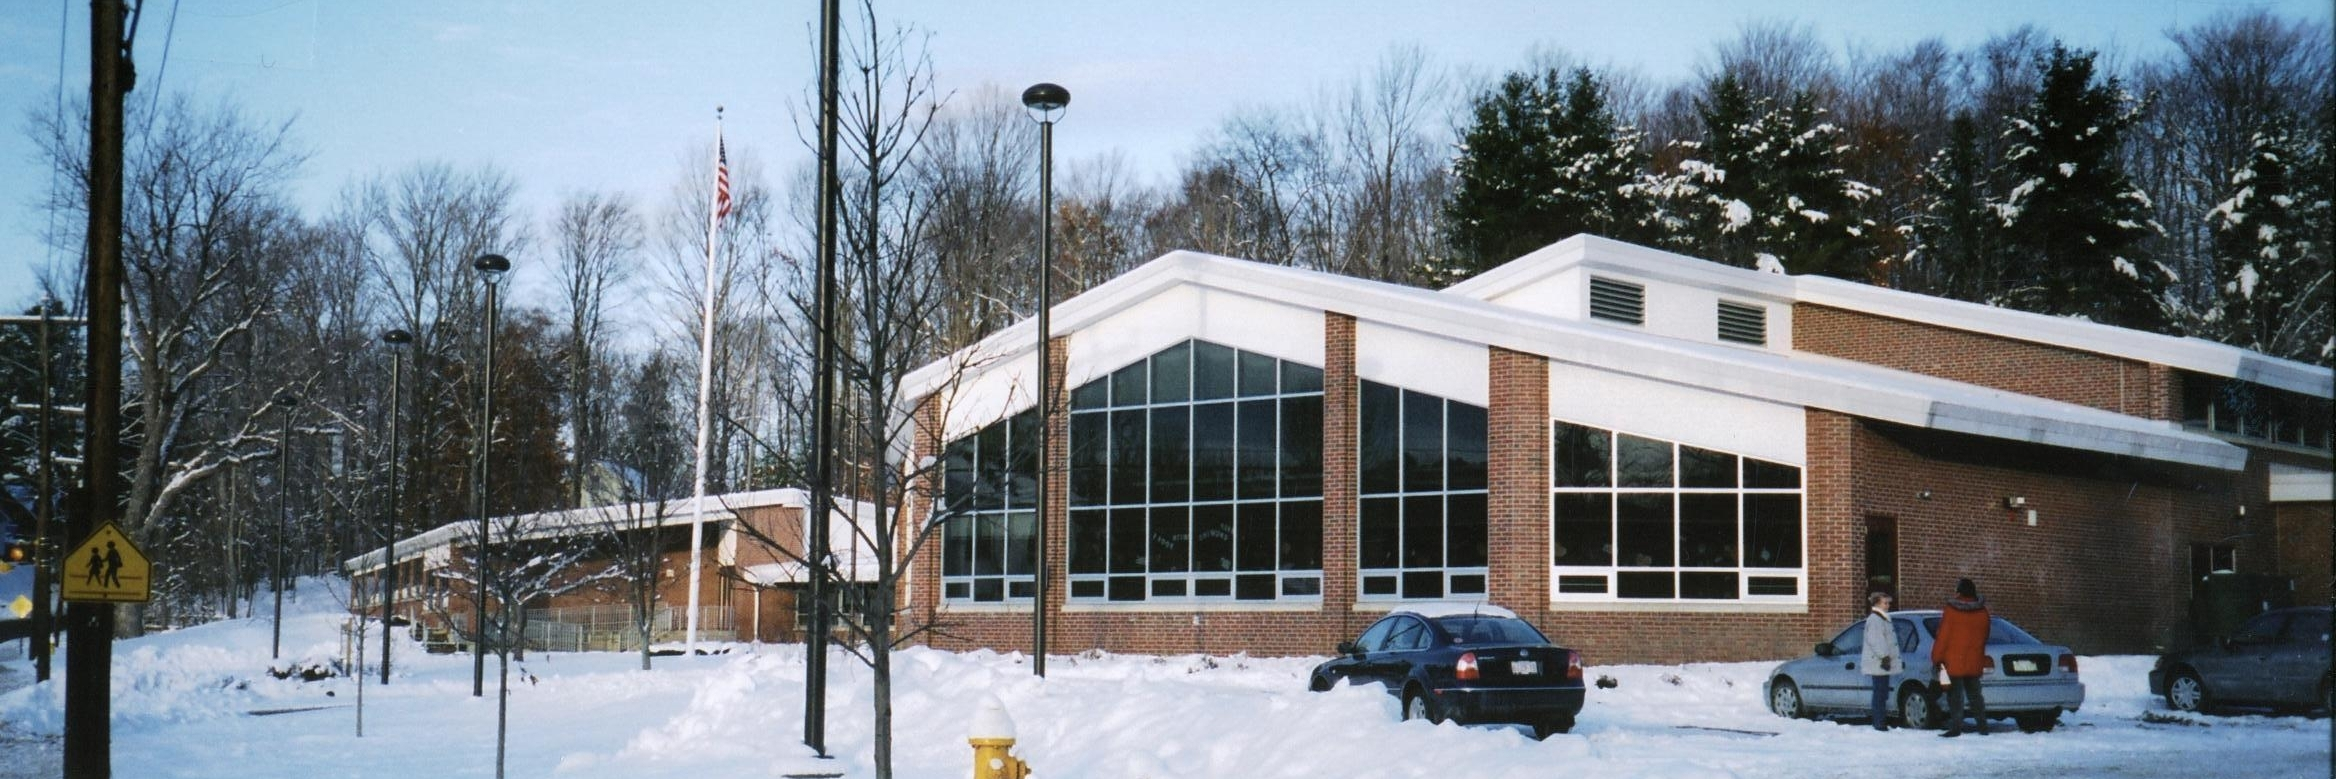 Stearns Elementary School, Pittsfield, Massachusetts